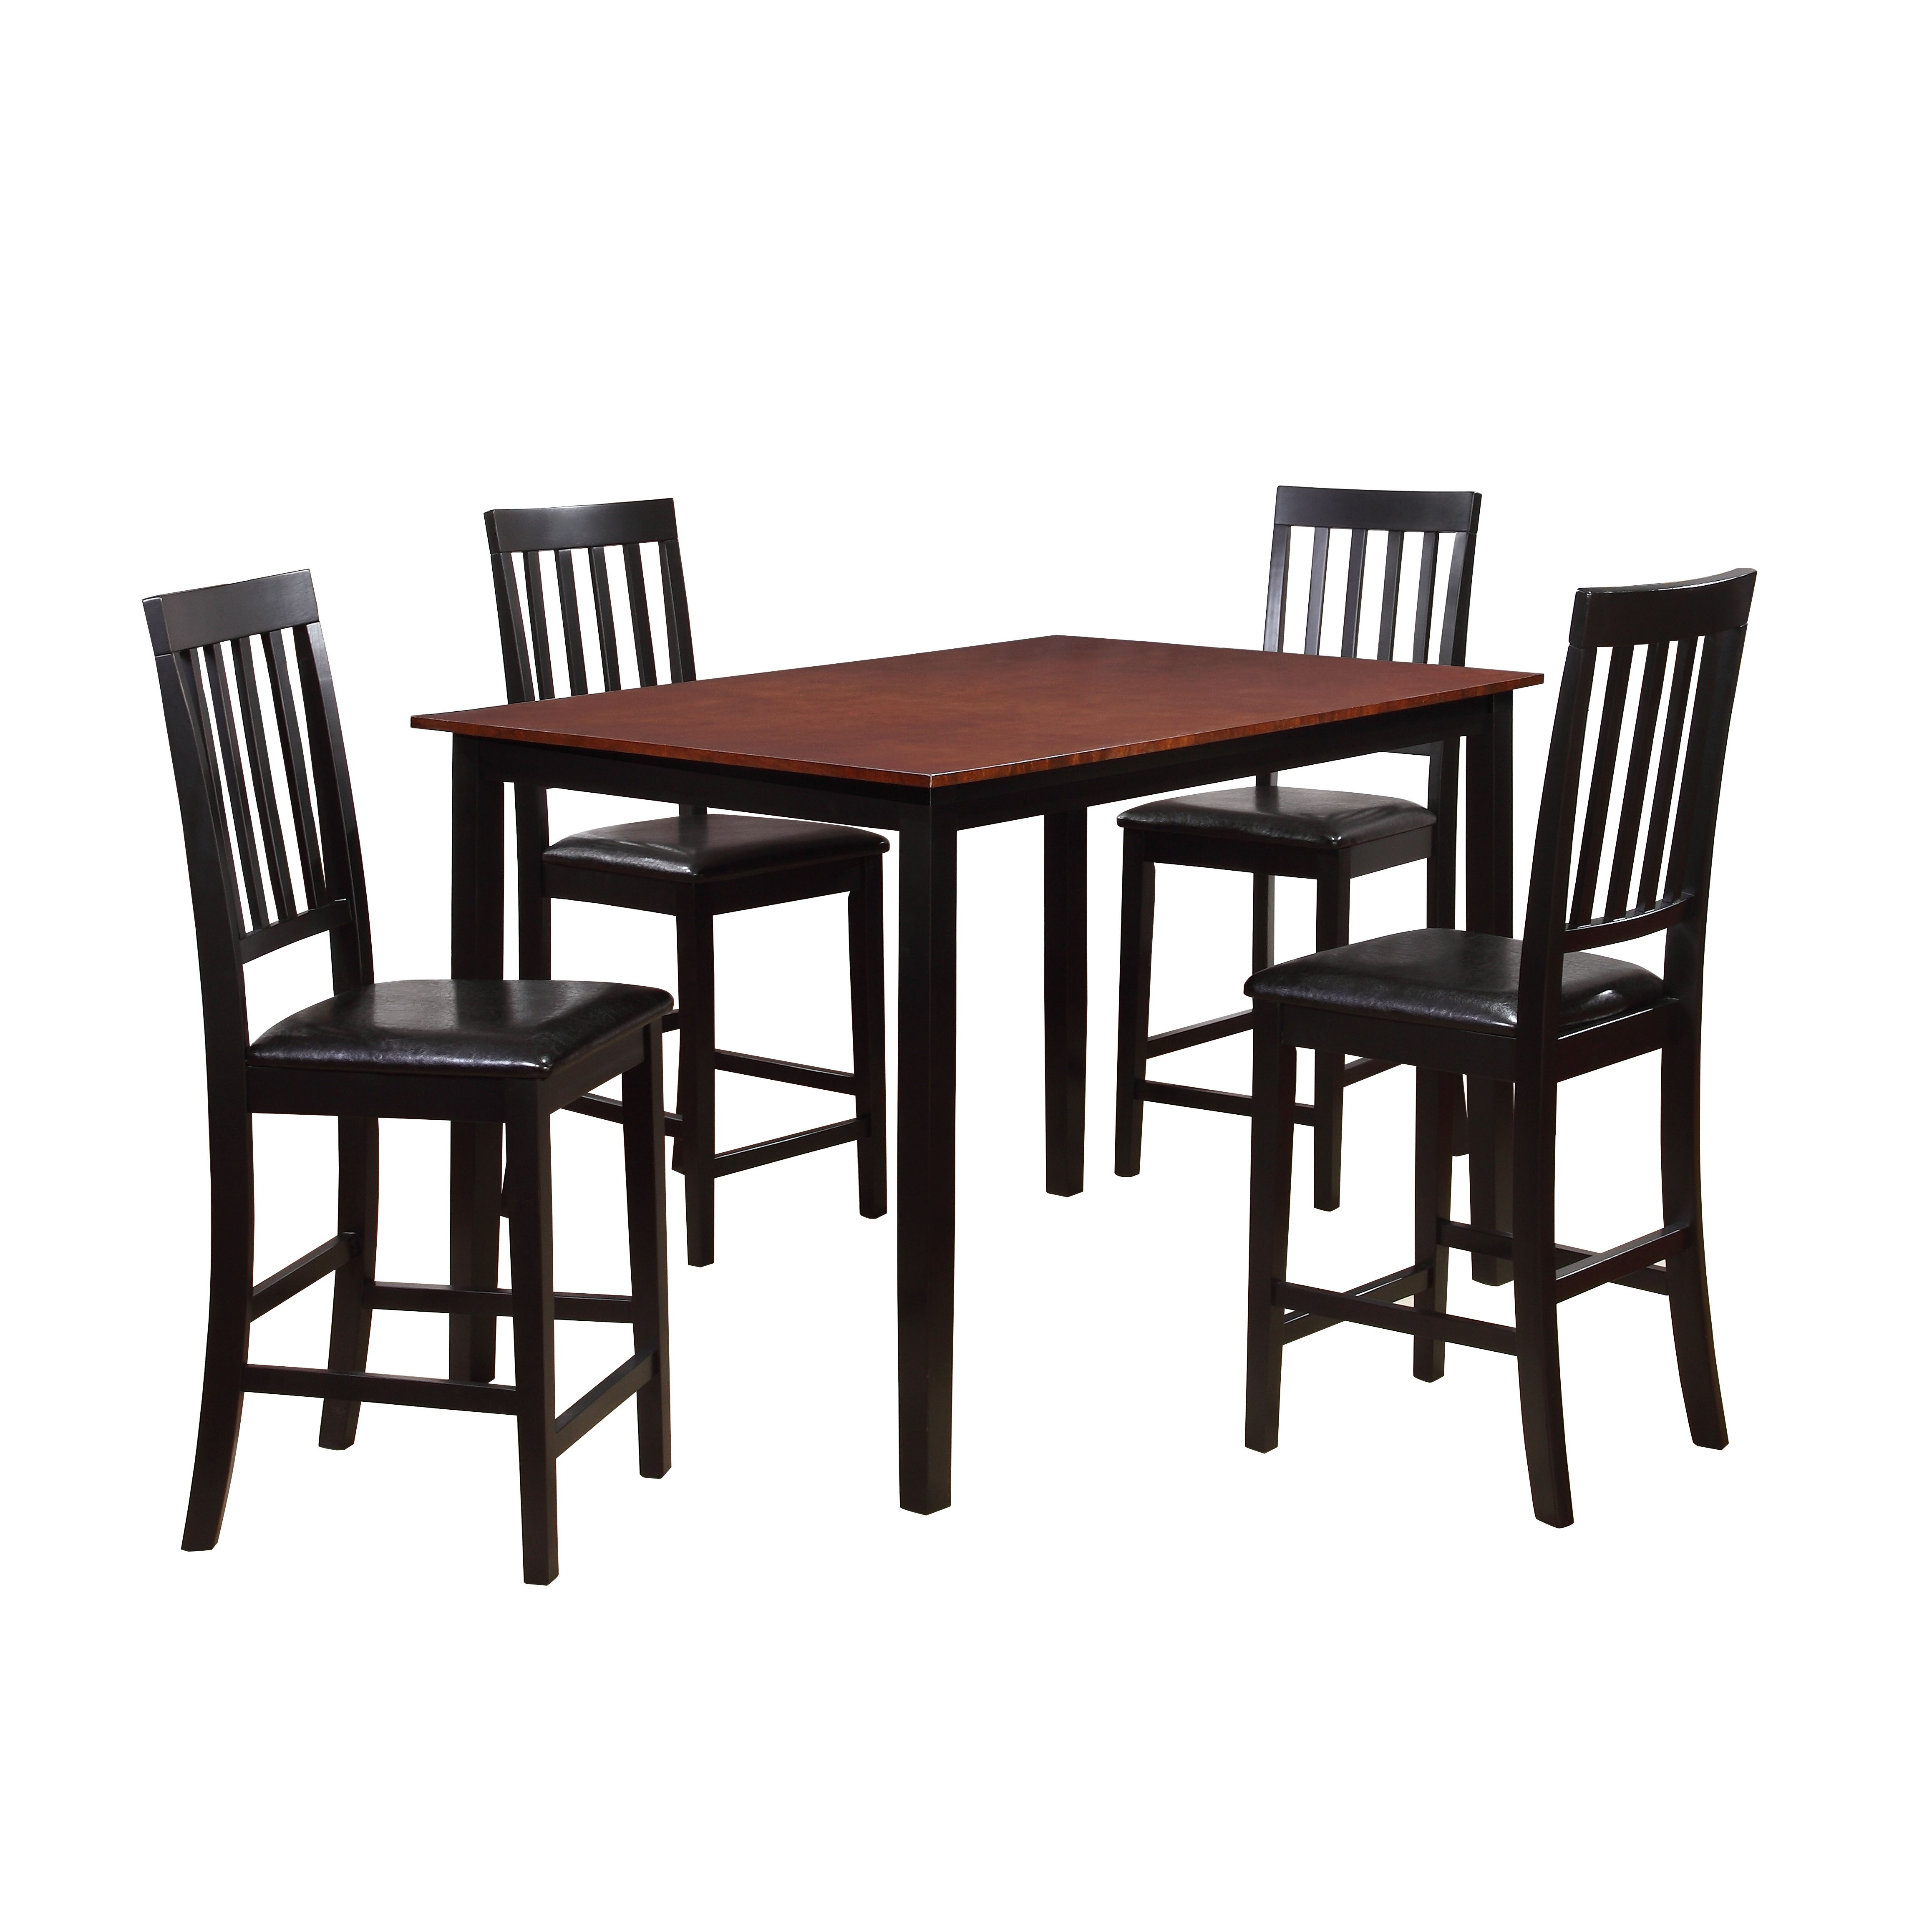 max dining table height 28 images monarch specialties  : Charlton Home25C225AE Andtree Counter Height Dining Table from americanhomesforsale.us size 4631 x 4631 jpeg 1074kB